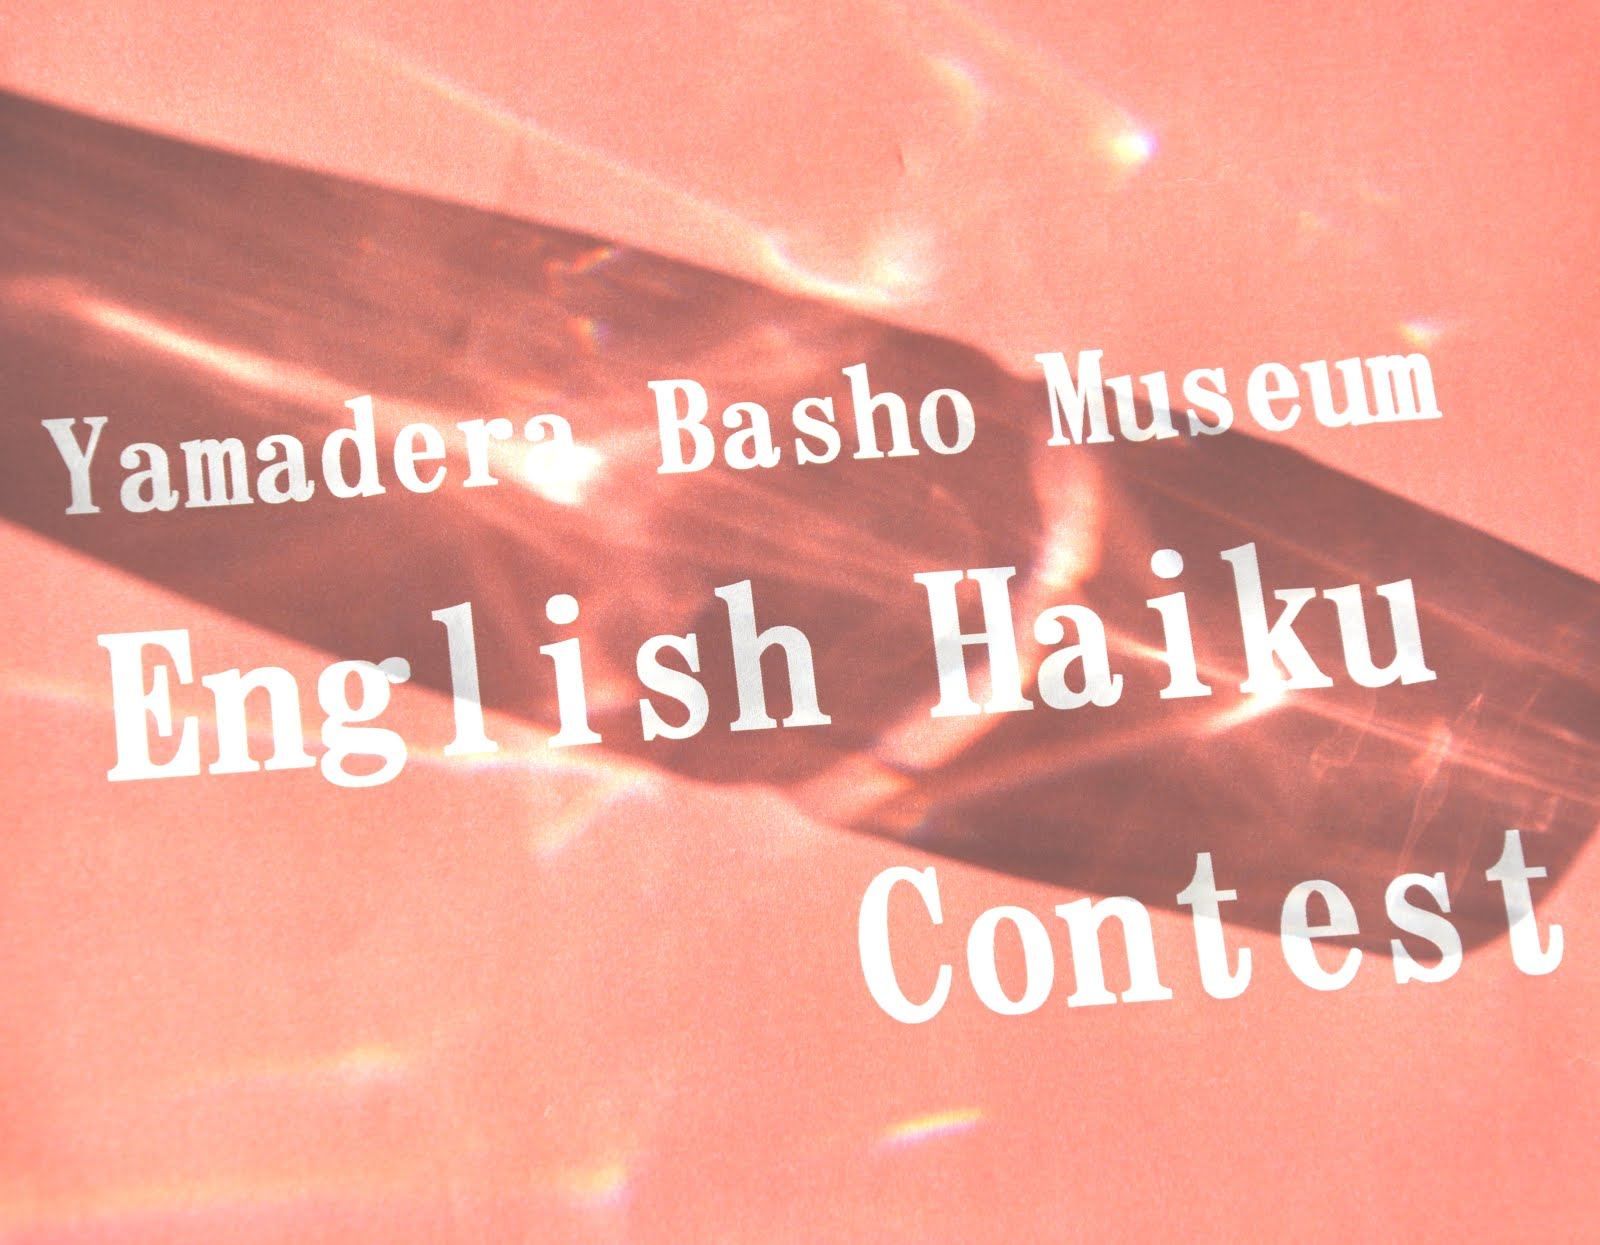 9th Yamadera Basho Museum Contest - JAPAN